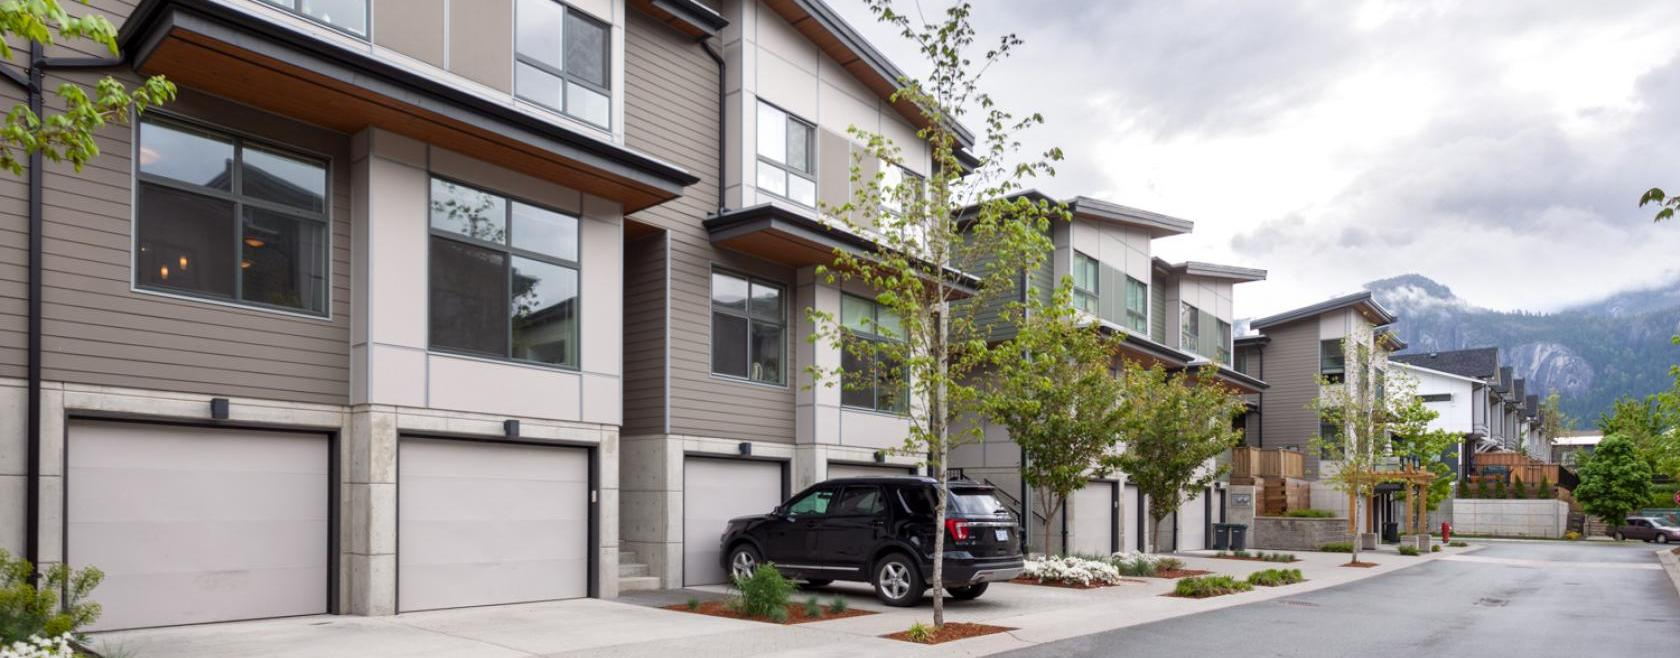 1156 Natures Gate, Downtown SQ, Squamish 2